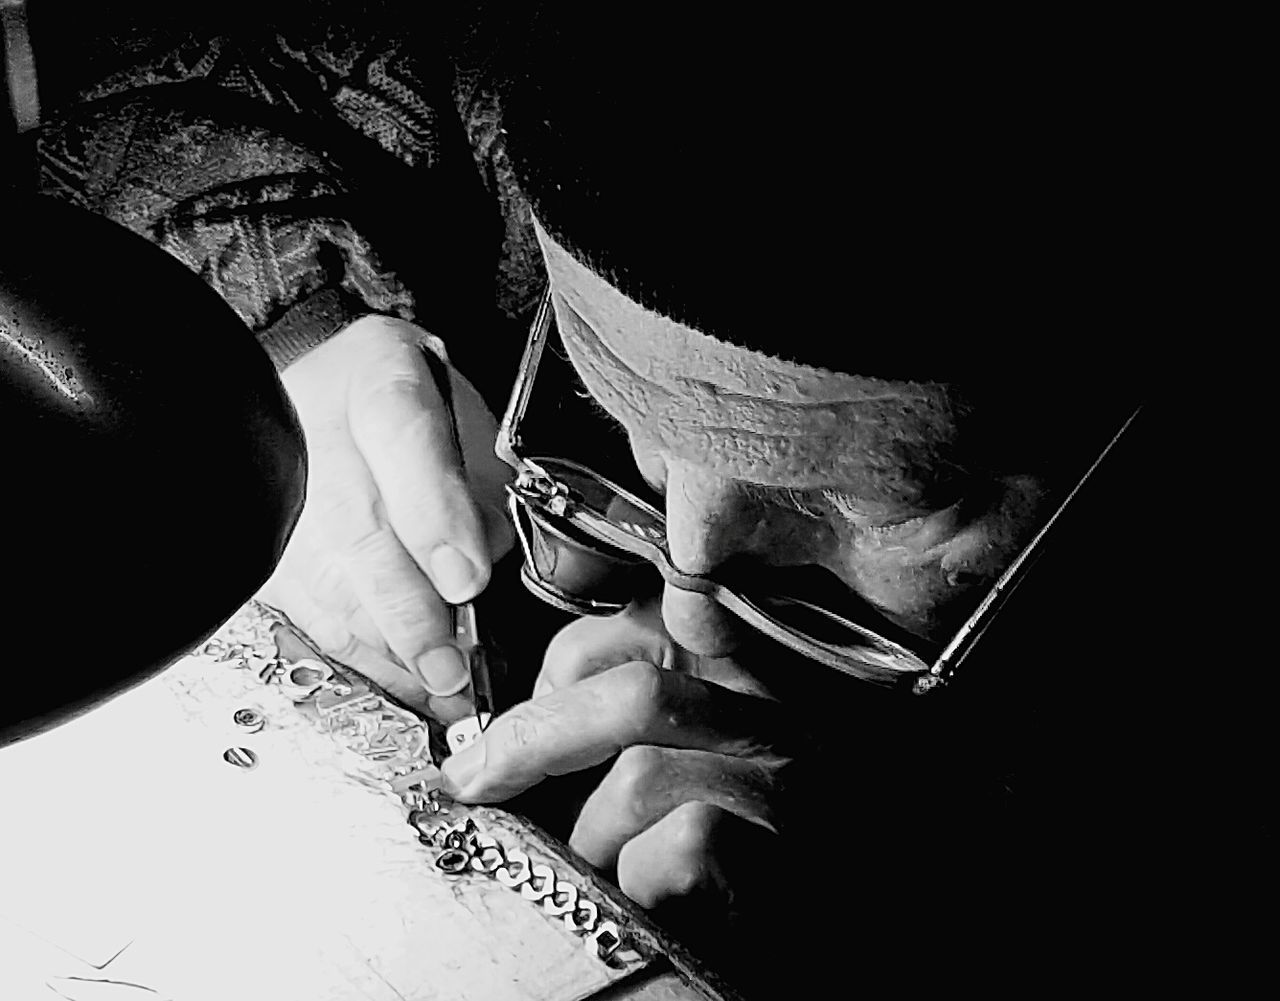 Human Hand One Person People Close-up Man Man At Work Worker Work Ancient Work Ancient Workplace Passione Black & White Timeless Time Whattimeisit